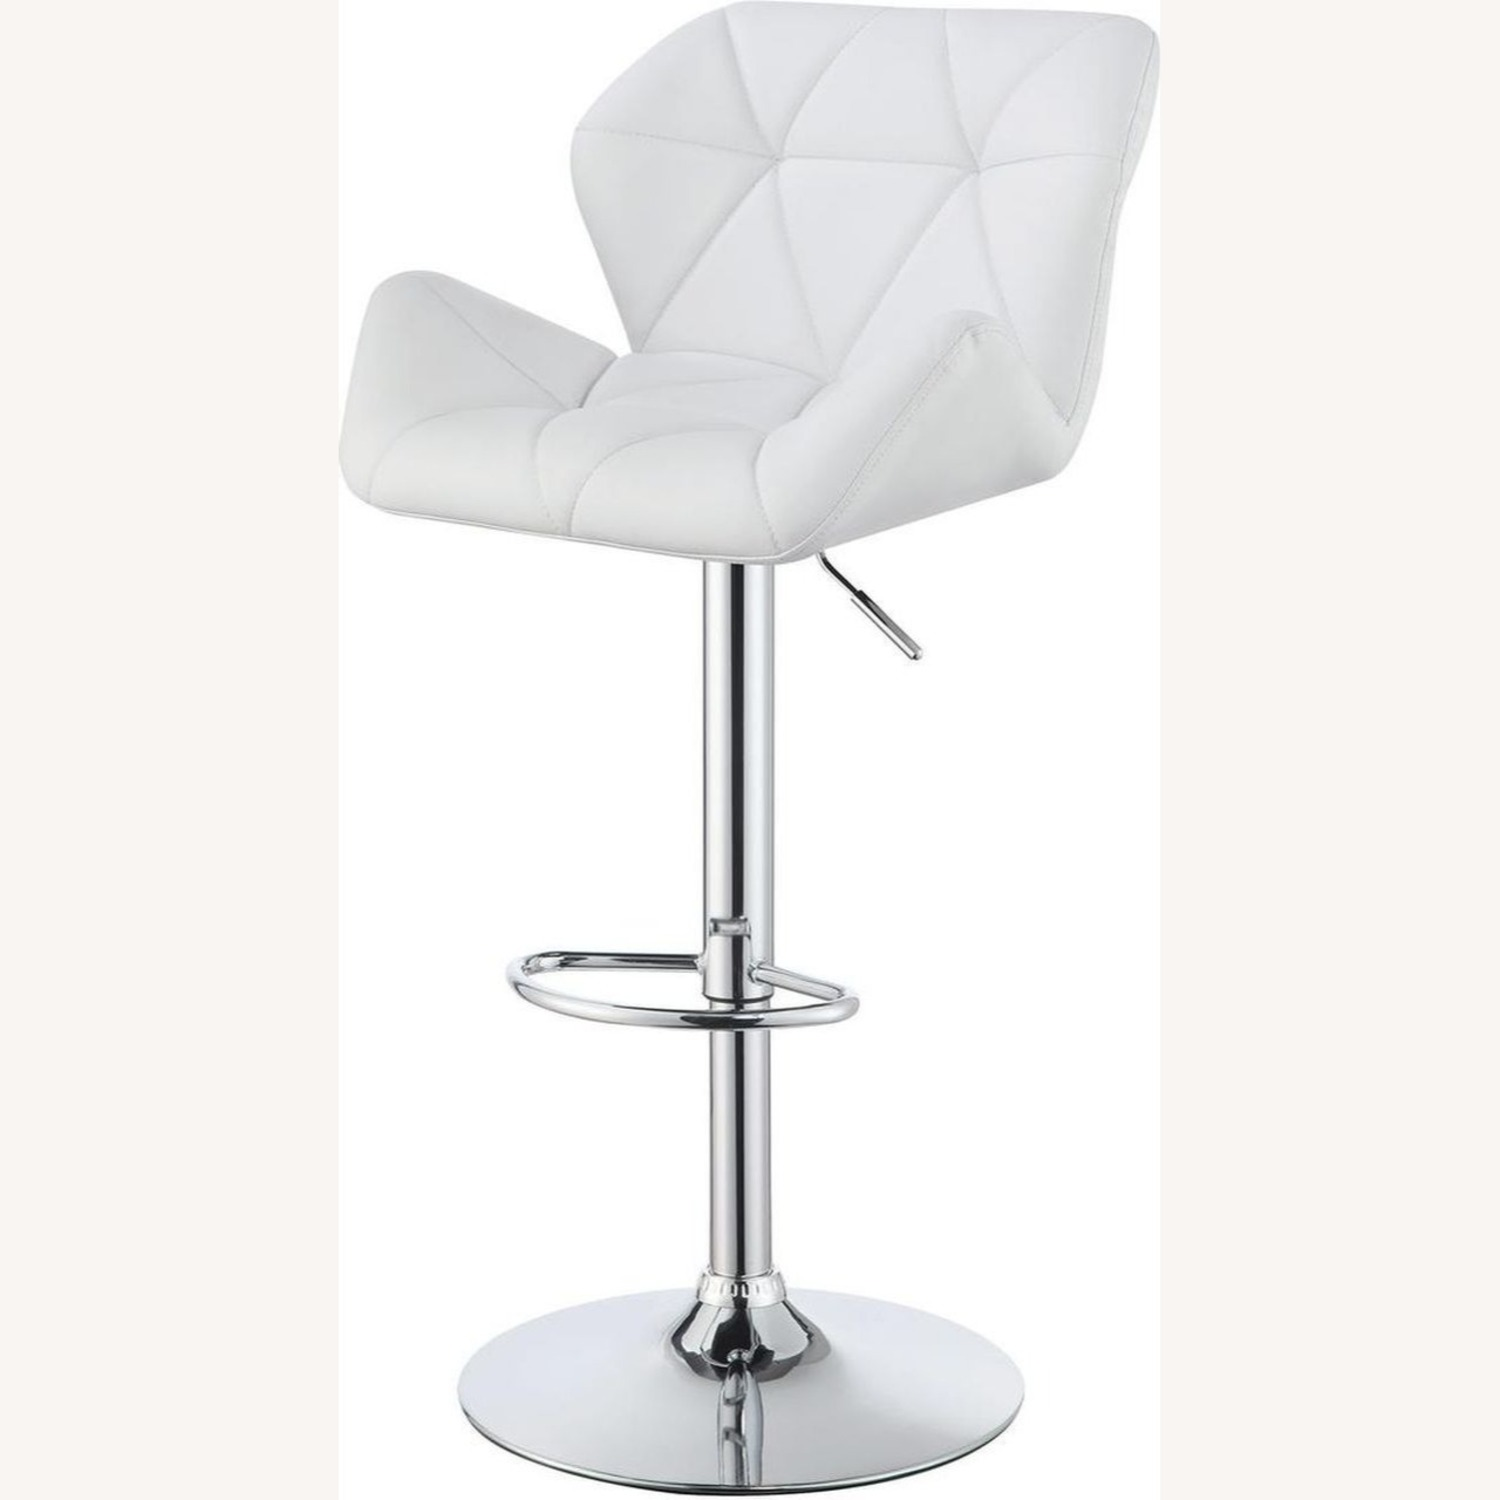 Adjustable Bar Stool In Tufted White Leatherette - image-1